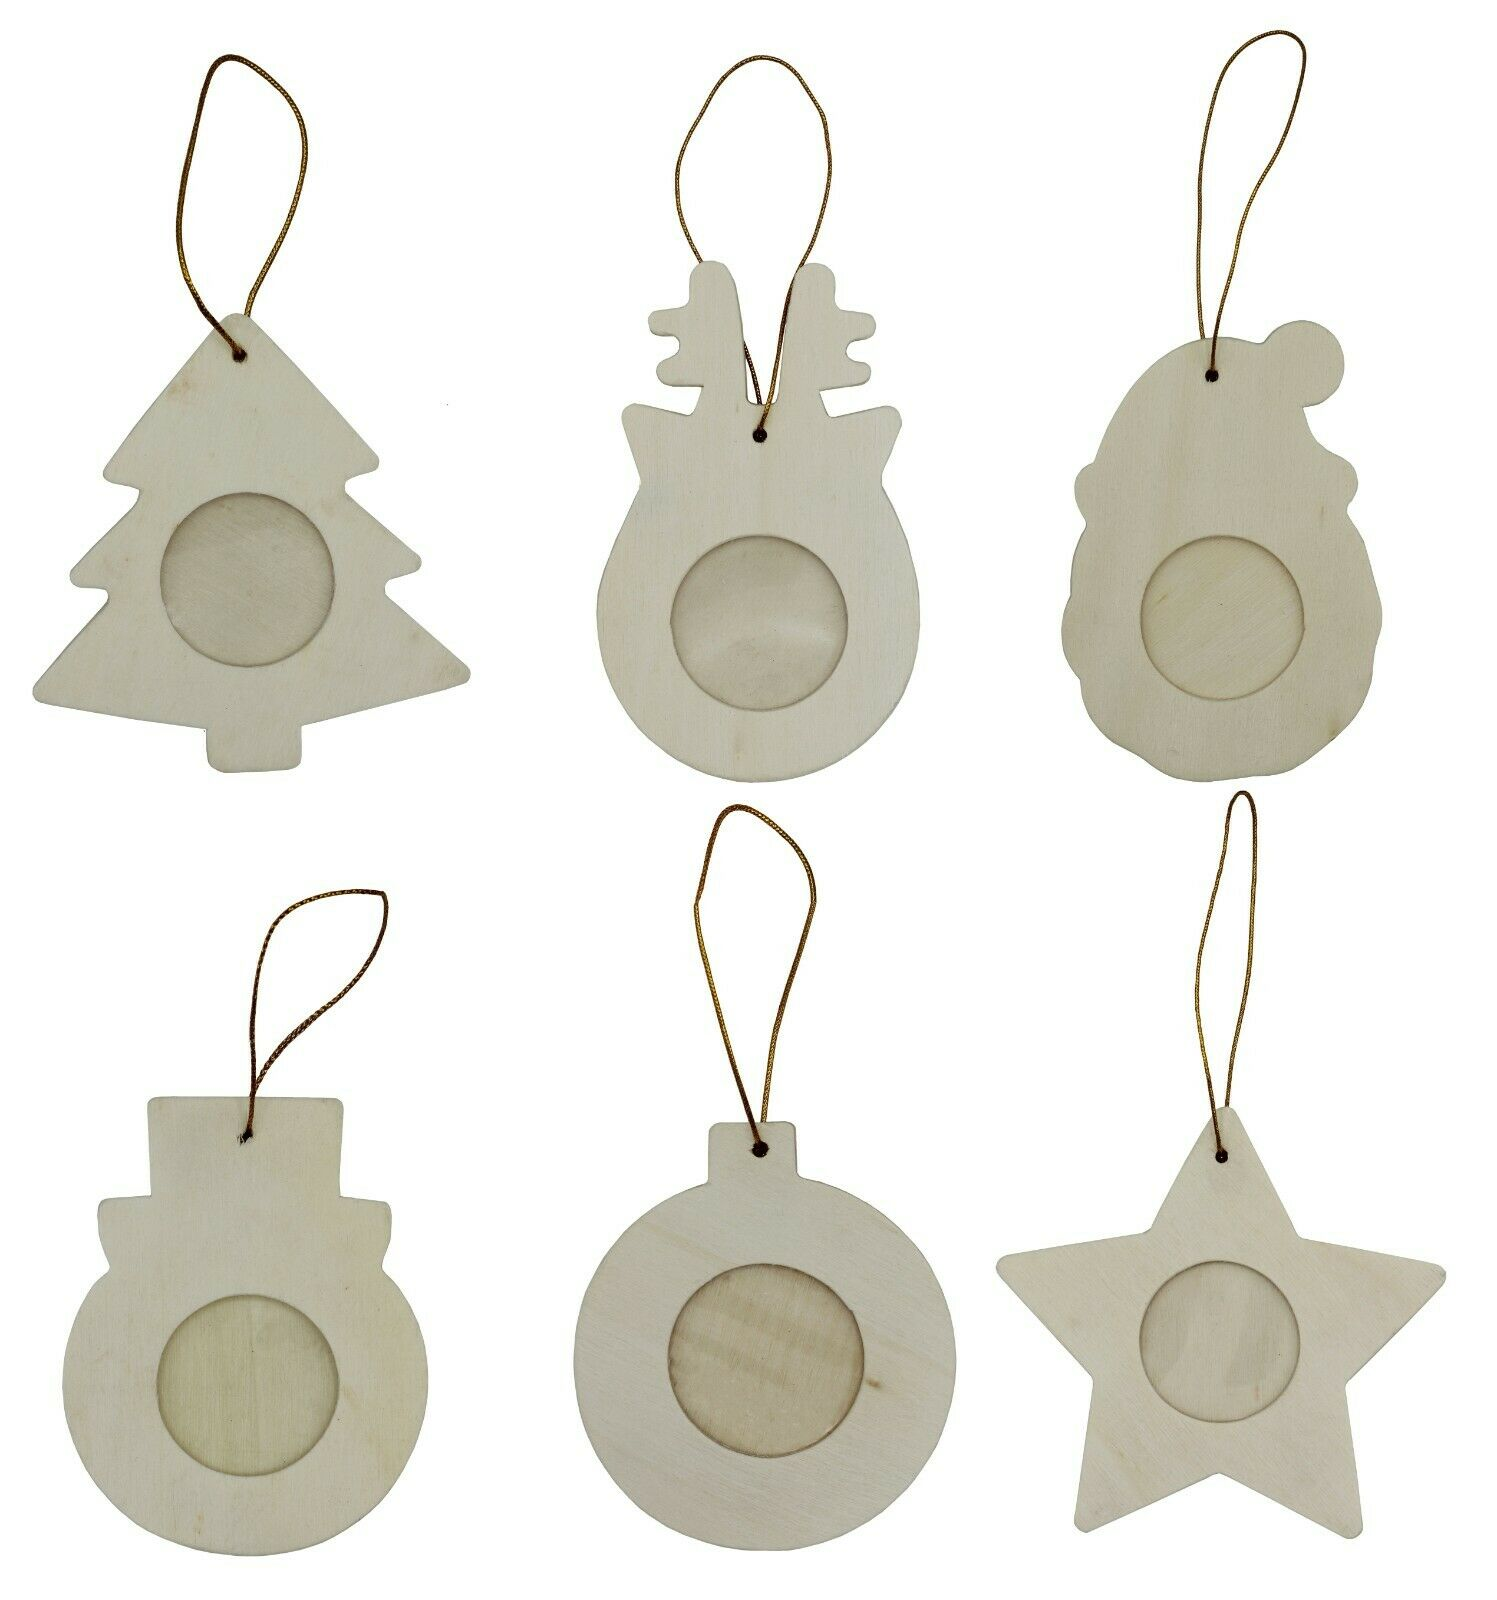 36-Pack Photo Frame Ornaments, DIY Wood Christmas Theme Crafts